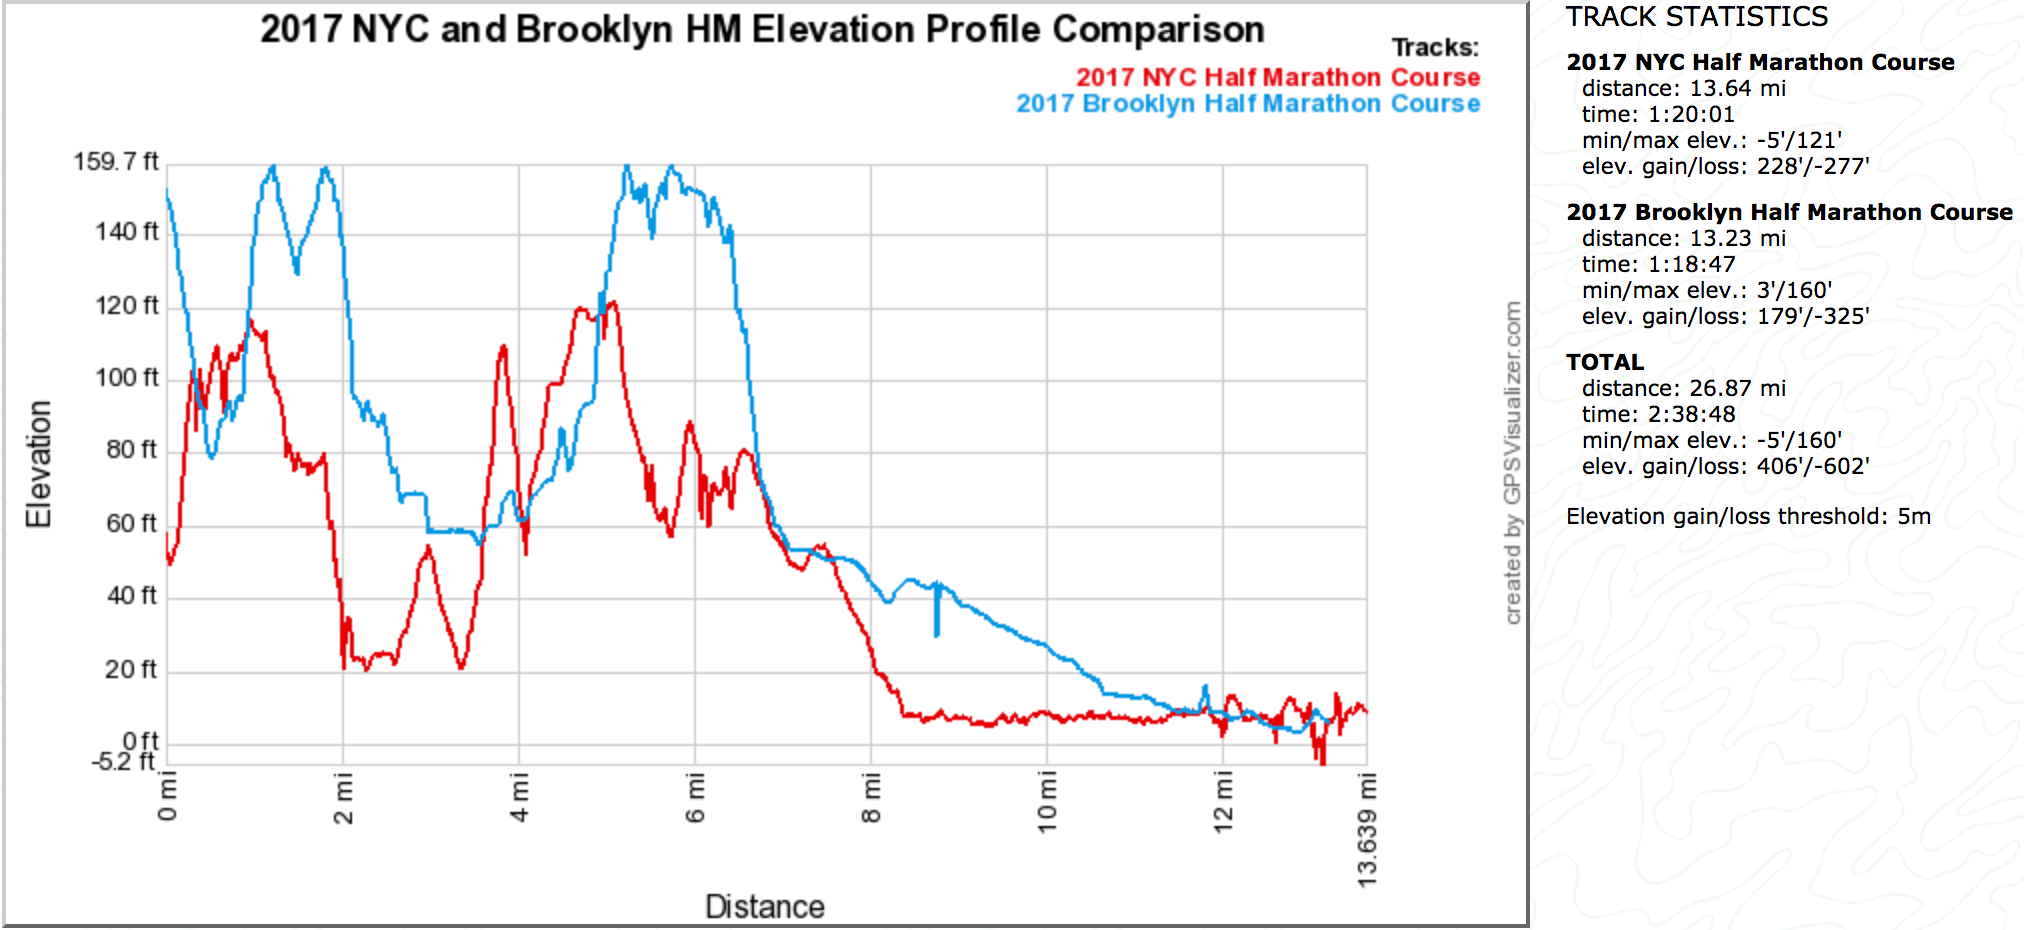 Brooklyn half and 2017 NYC Half Marathon Comparison